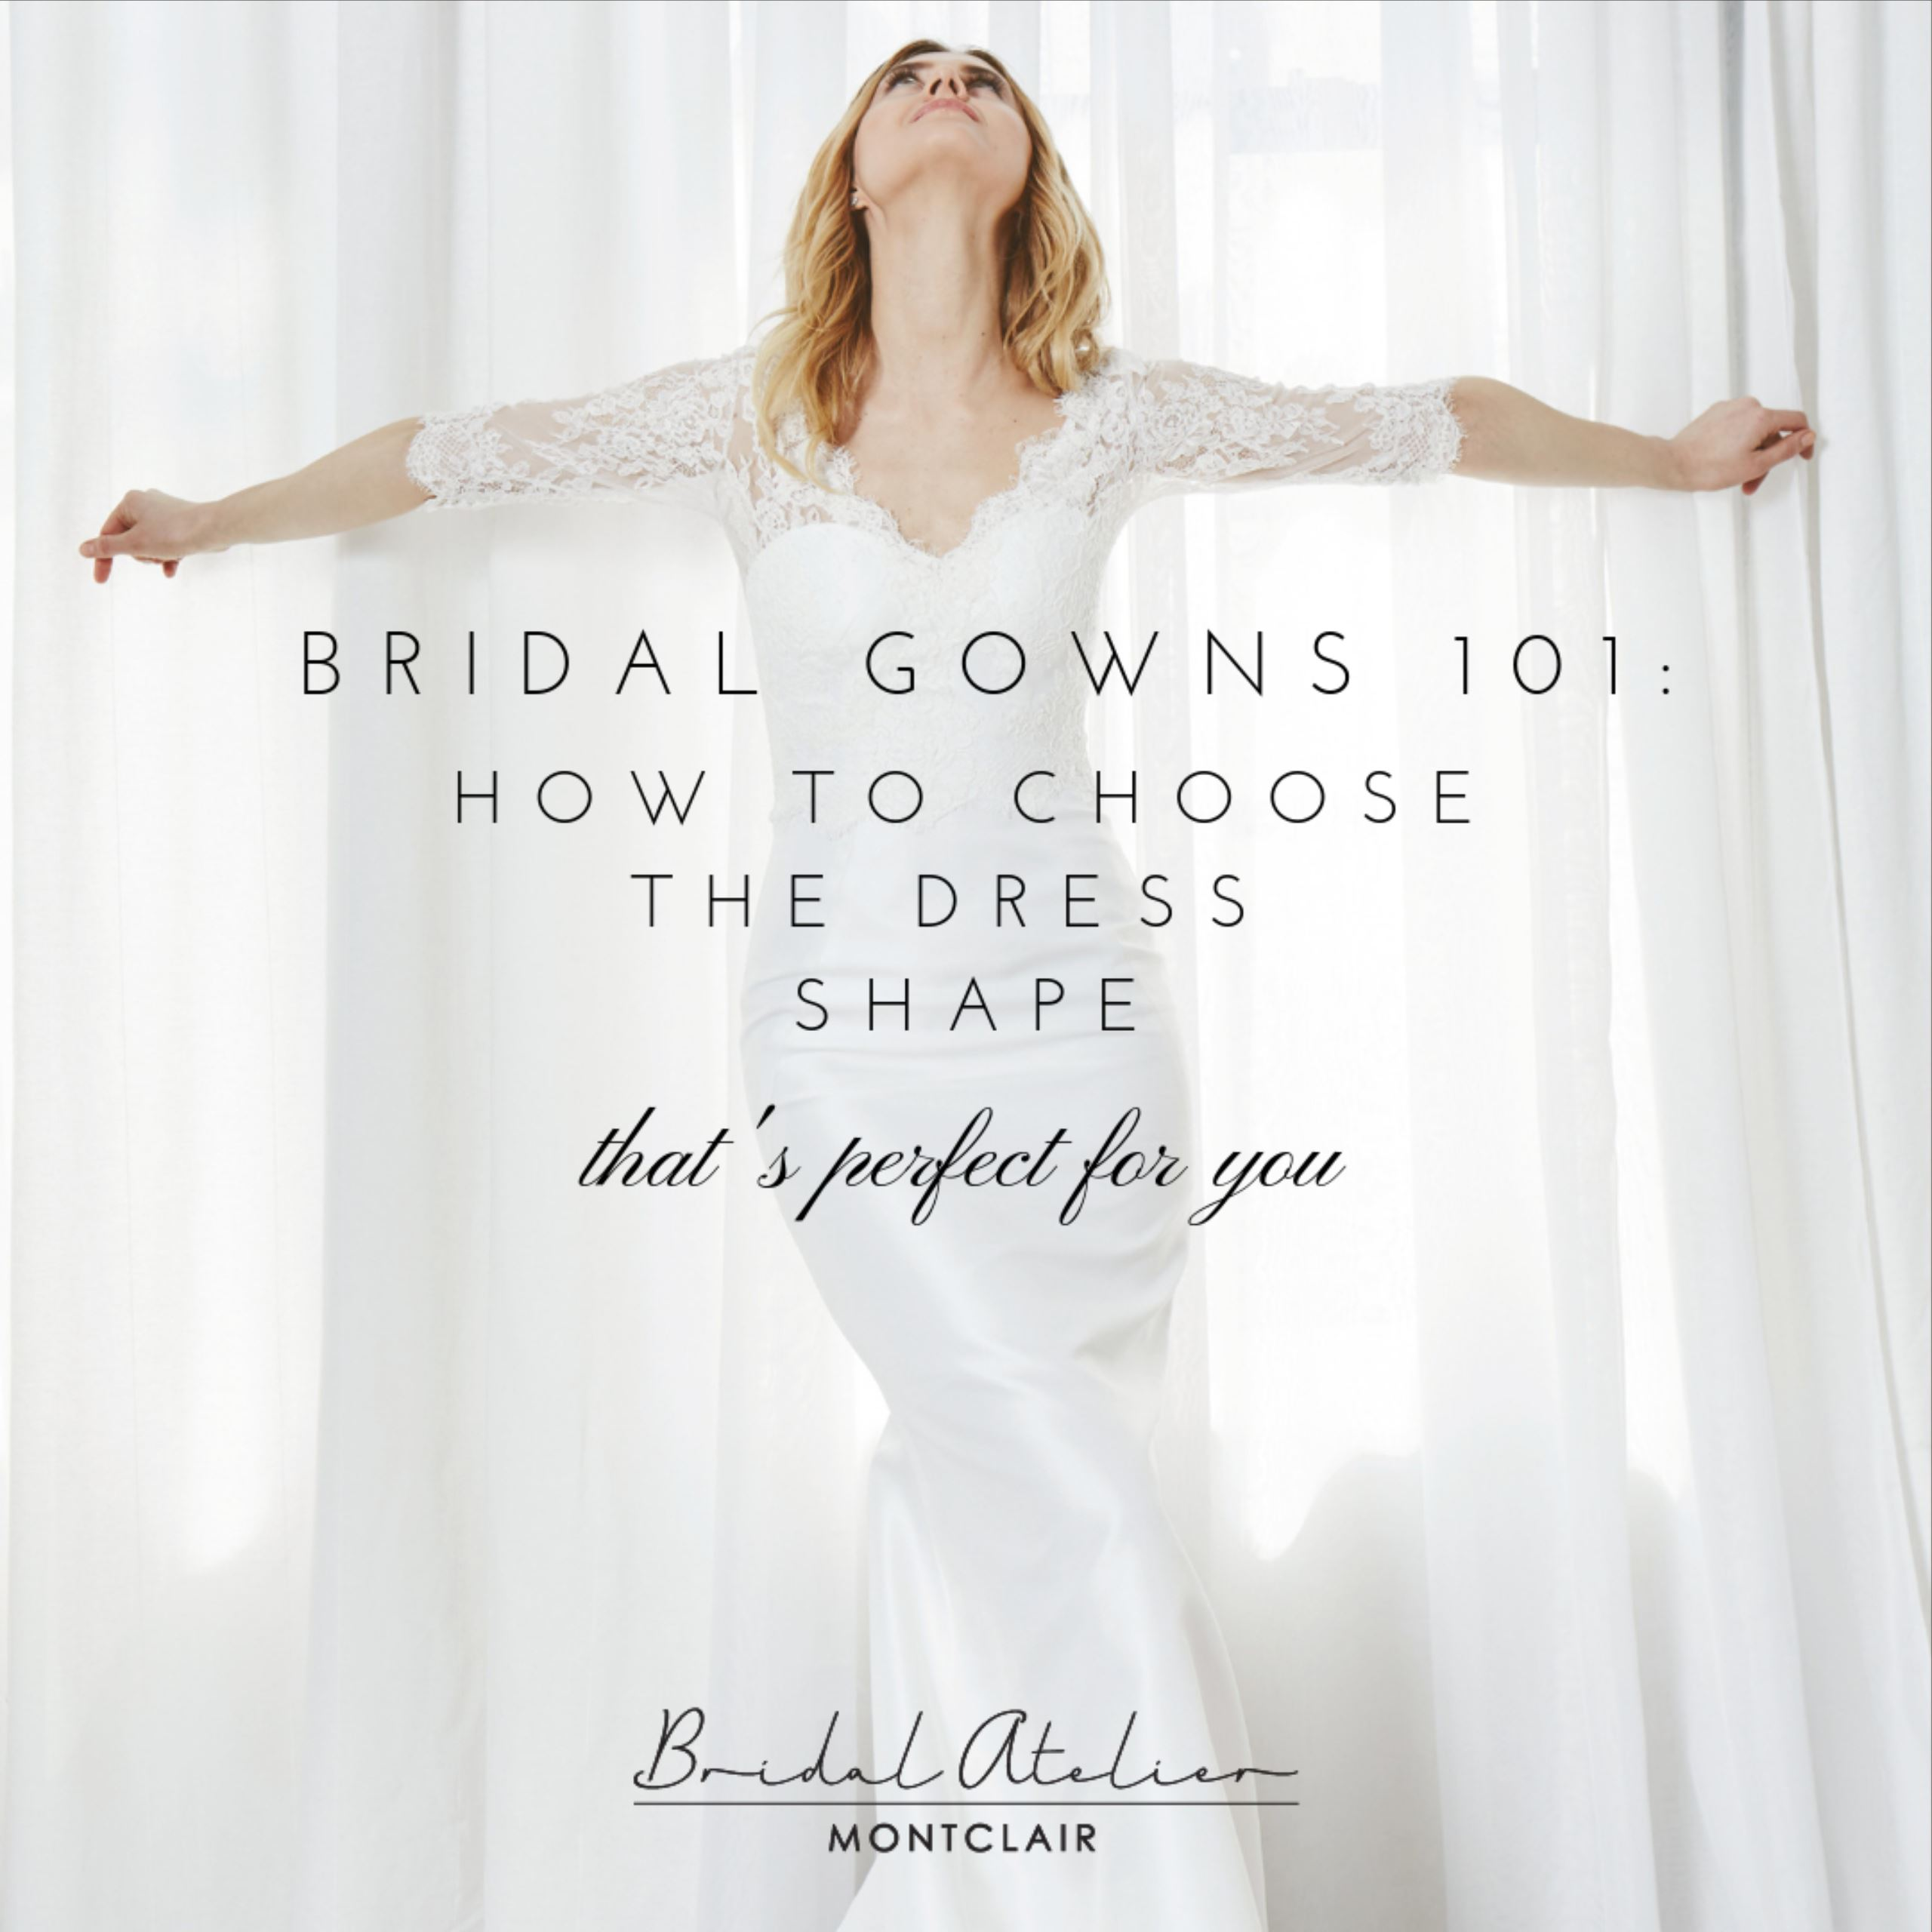 BRIDAL GOWNS 101: HOW TO CHOOSE THE DRESS SHAPE THAT'S PERFECT FOR YOU. Desktop Image